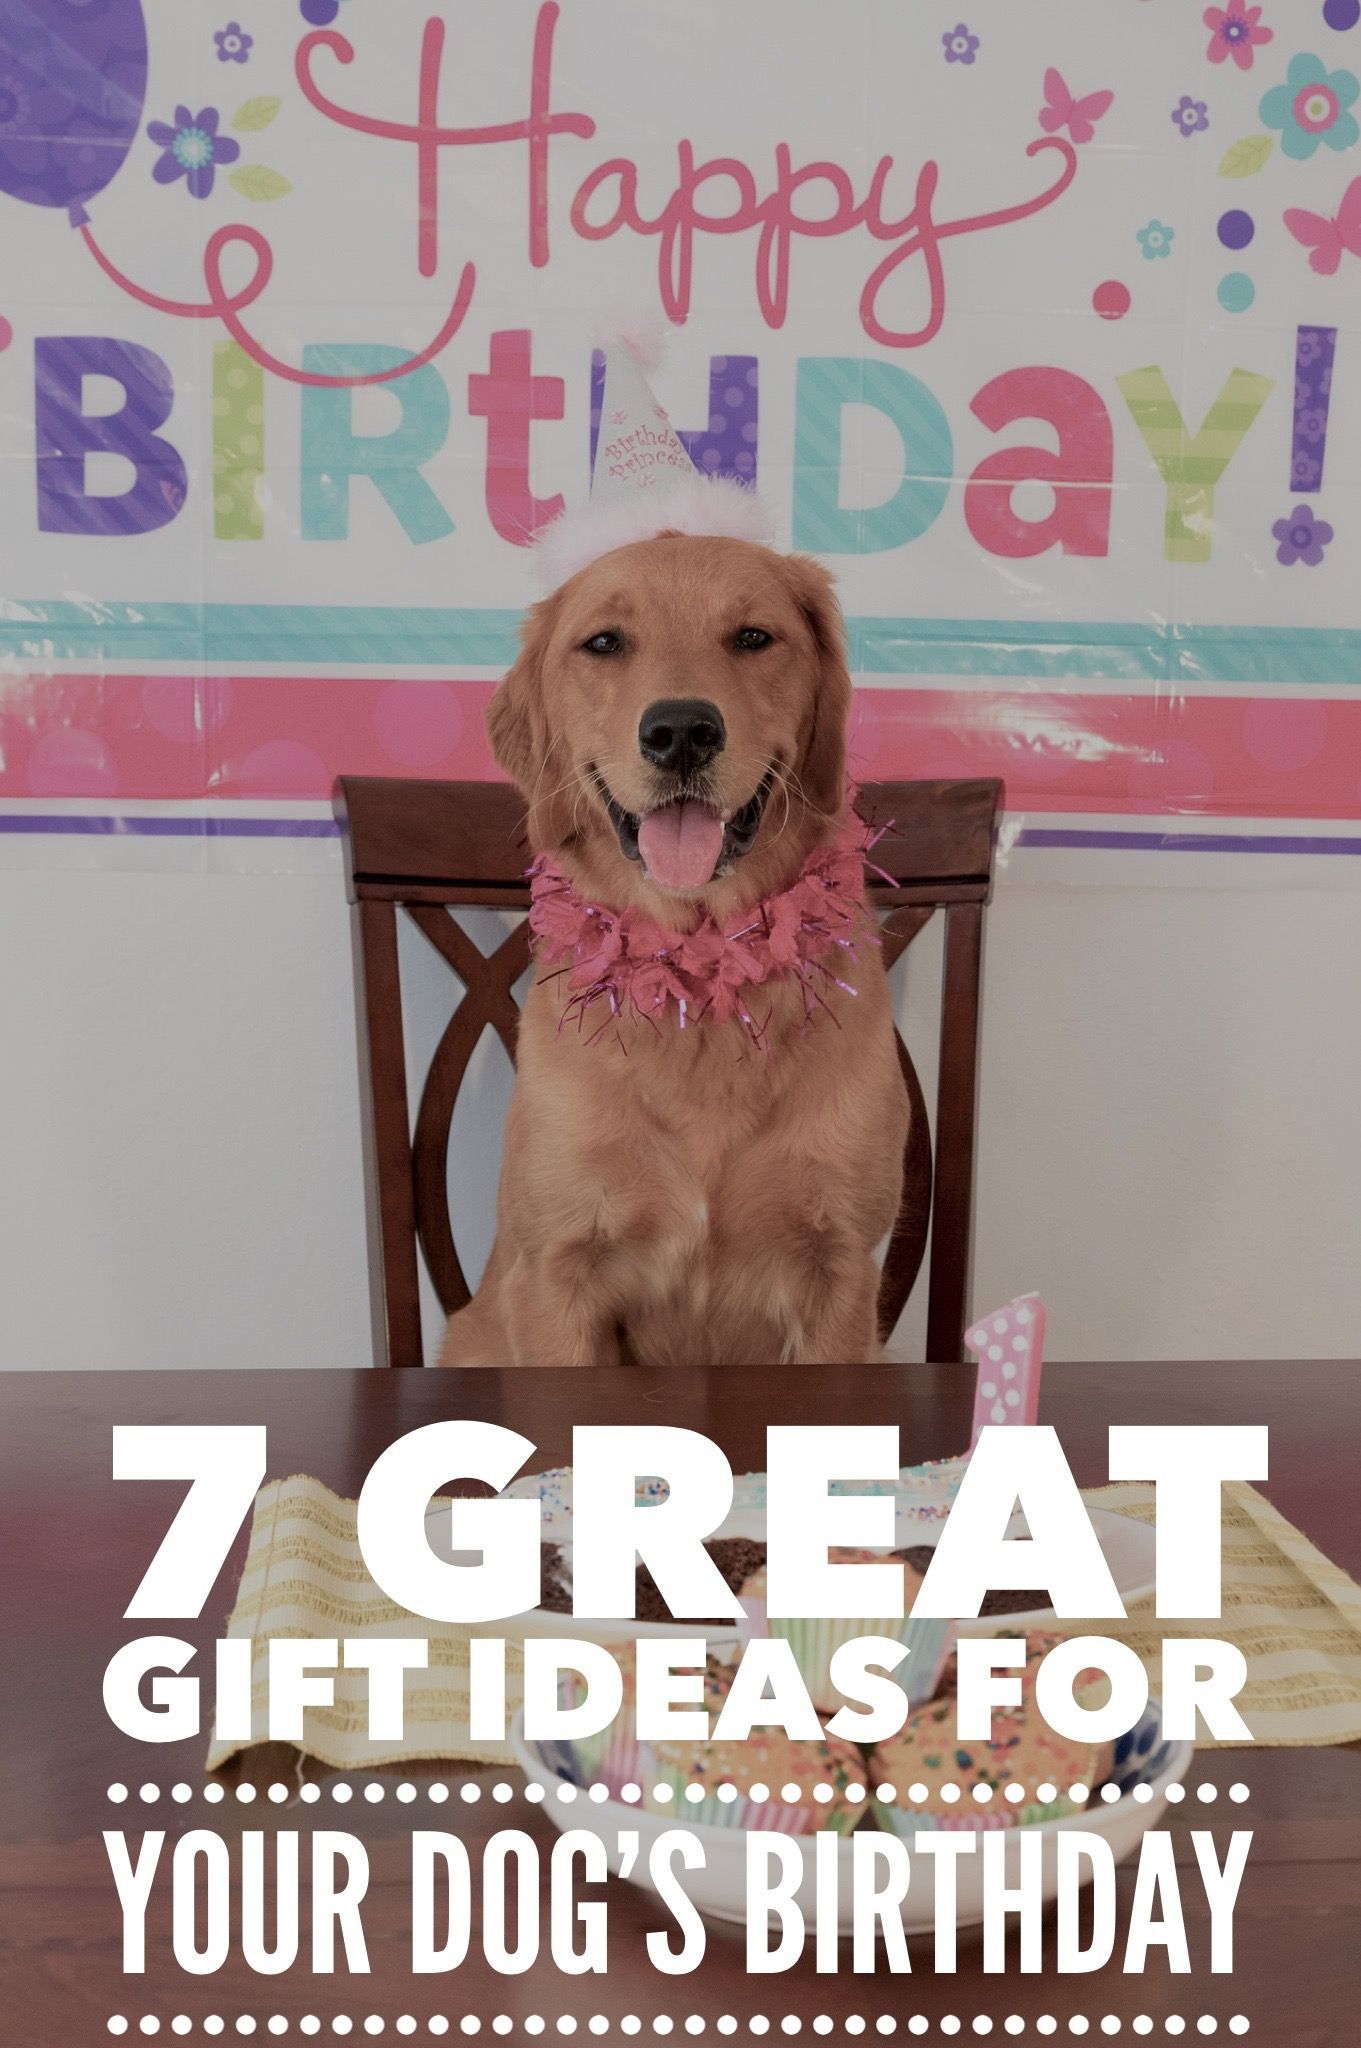 7 Great Gift Ideas For Your Dogs Birthday Get You Purse Out Ready To Treat Pooch Some Super Goodies This Year